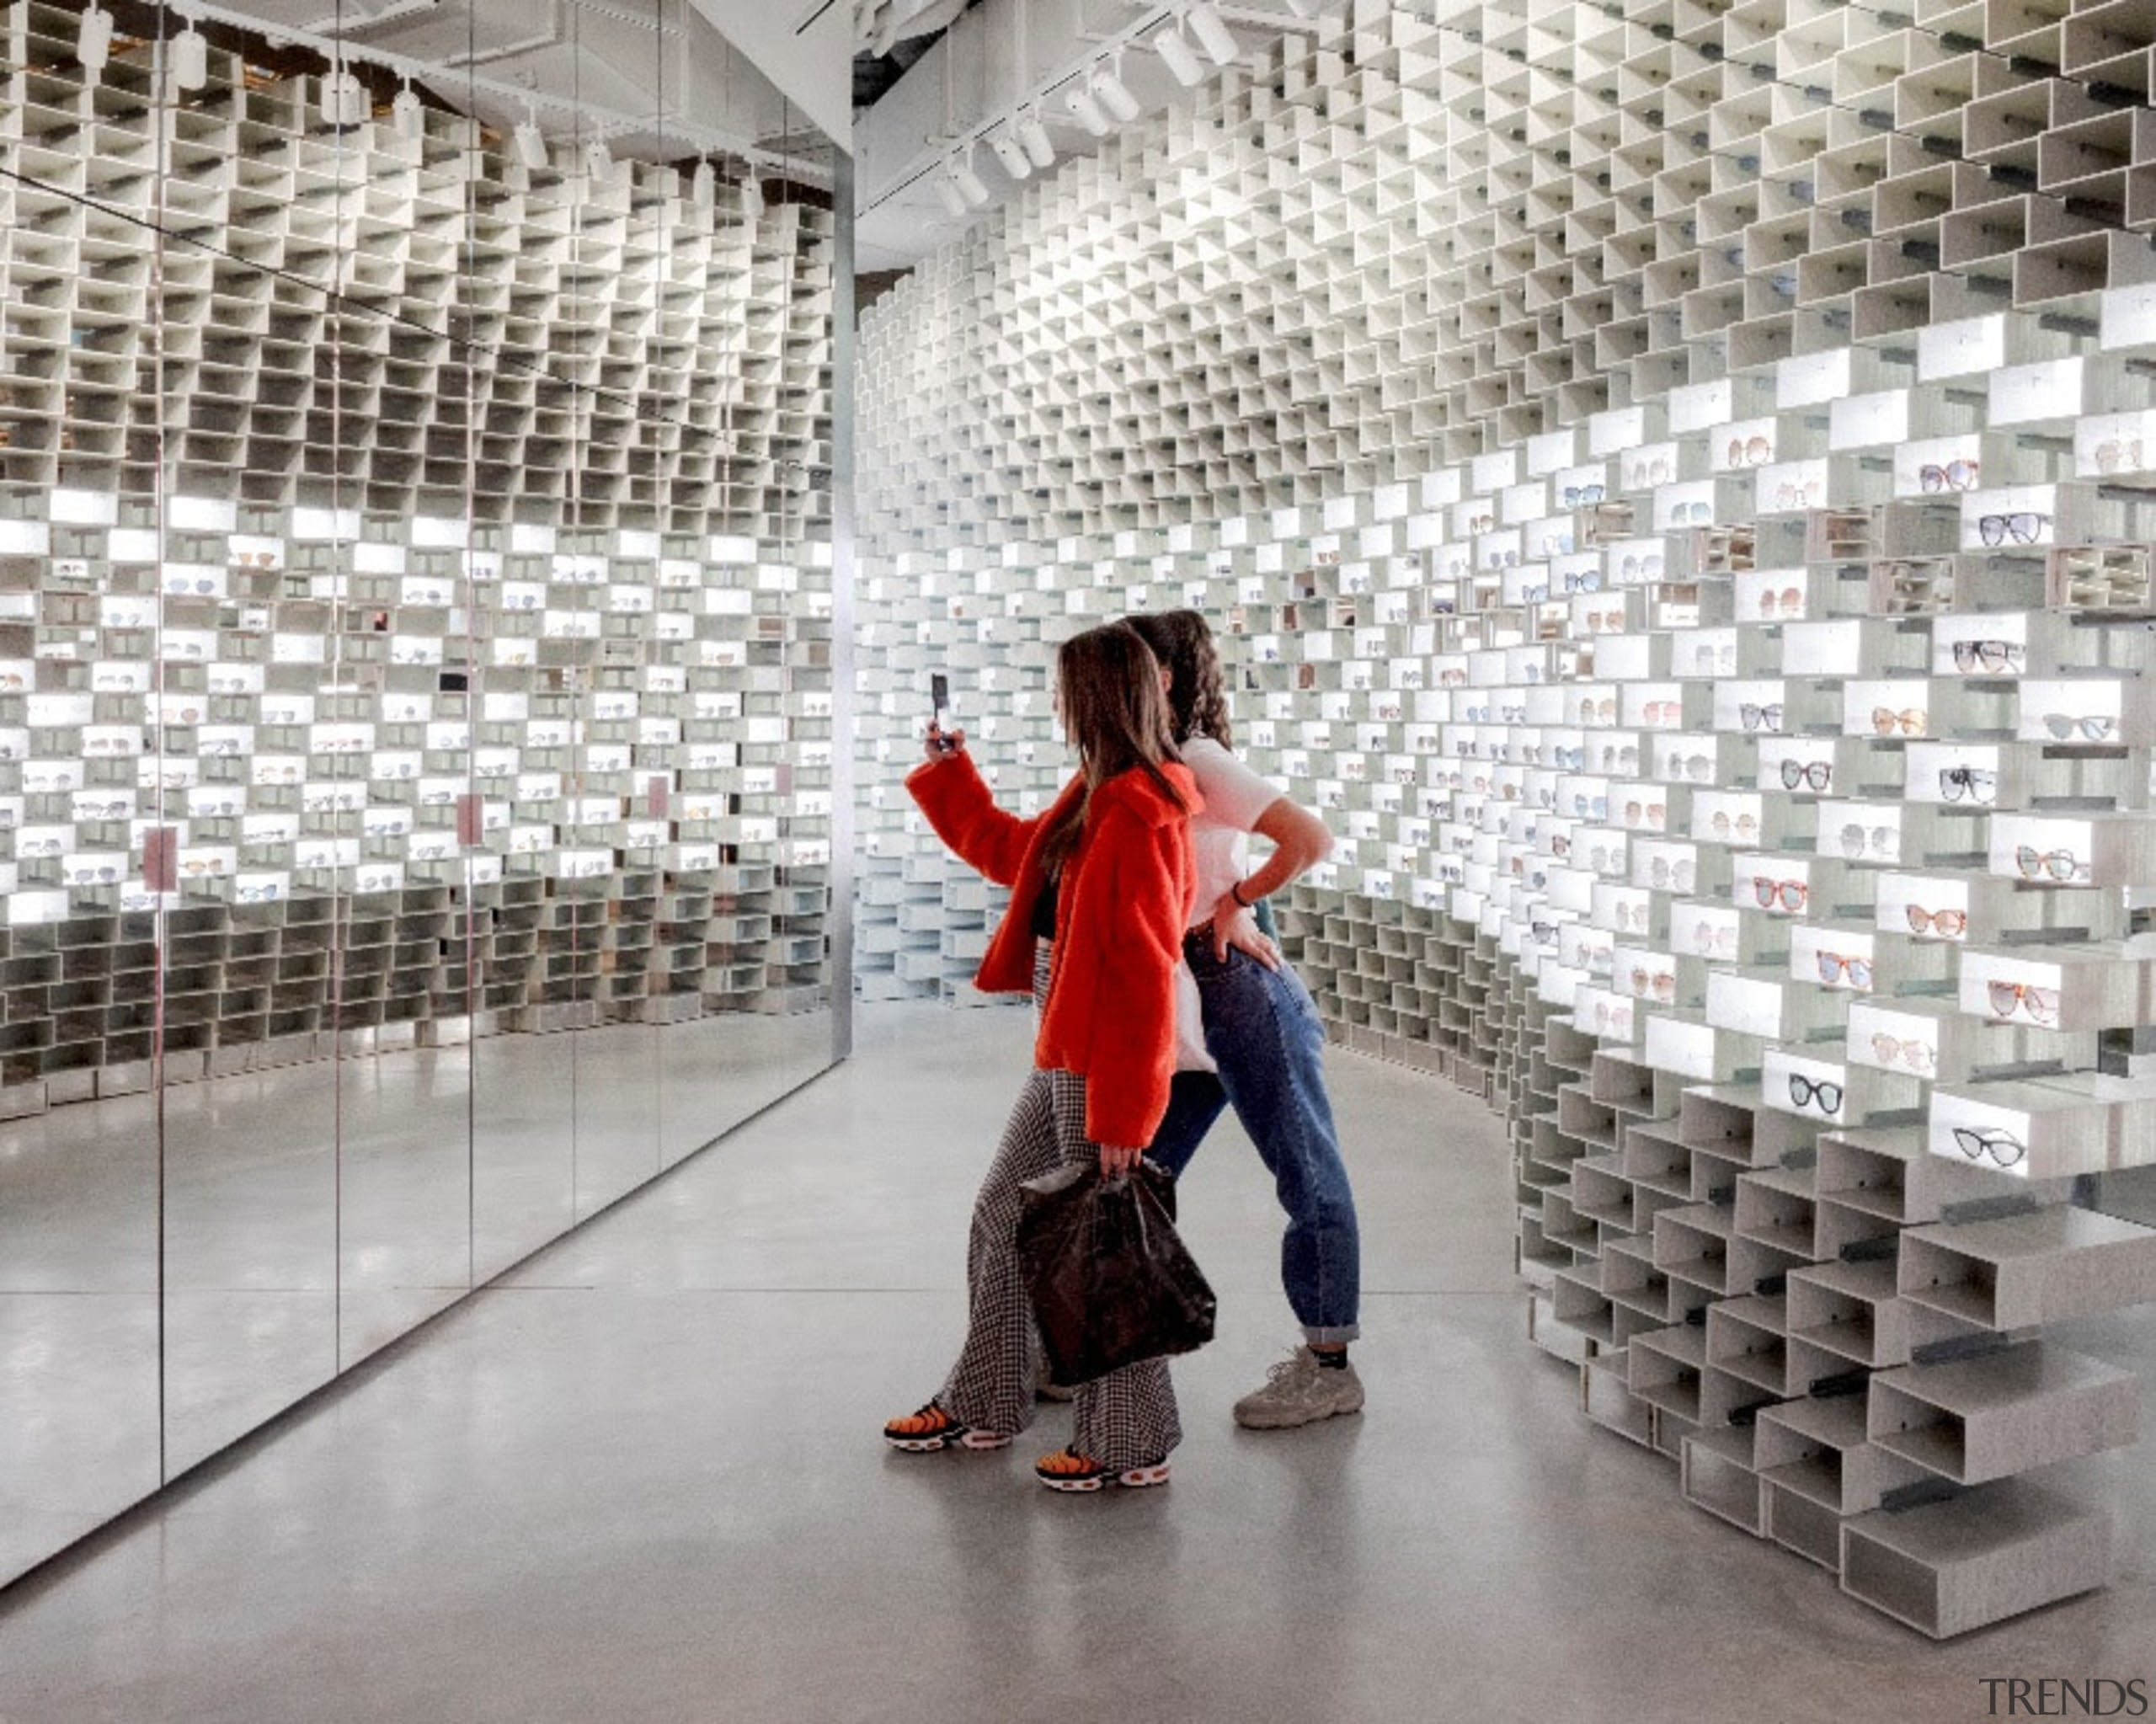 With the advent and omnipresence of online retail, architecture, art, dance, design, floor, flooring, footwear, performance, red, shoe, visual arts, wall, gray